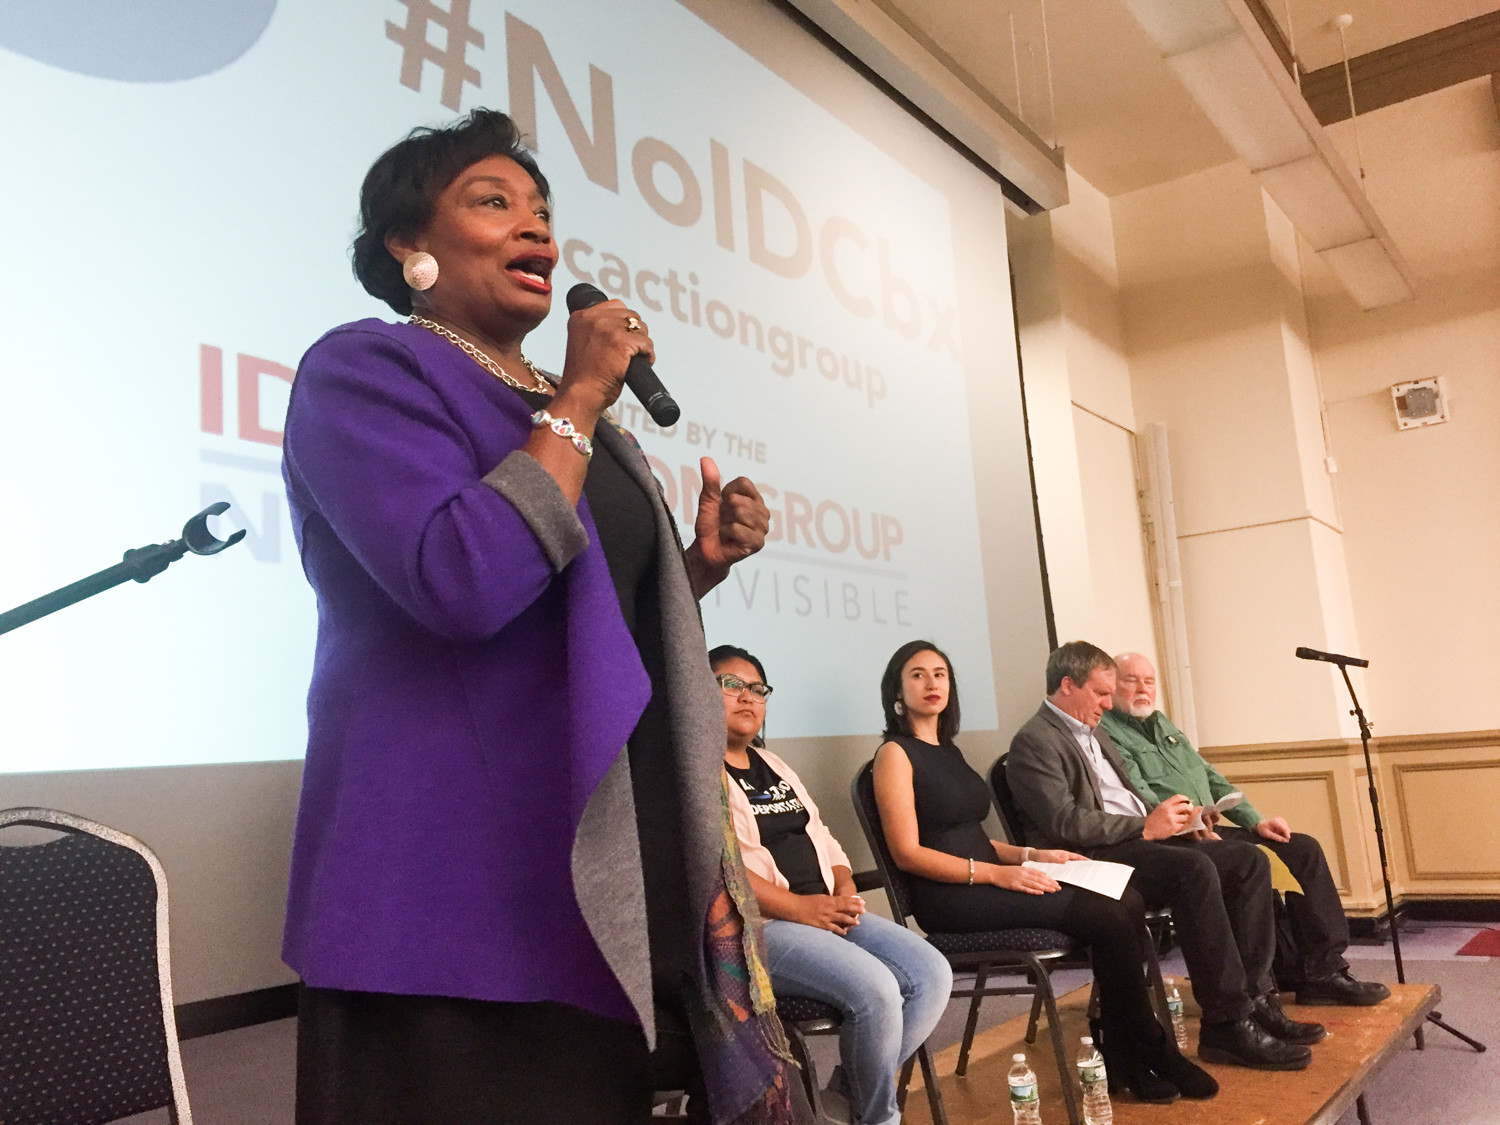 State Sen. Andrea Stewart-Cousins rallied a weekend forum at Lehman College in an effort to topple the Independent Democratic Conference — a group of senators who broke away from the Democratic Party and instead caucus with Republicans, making Stewart-Cousins a minority leader in the senate.